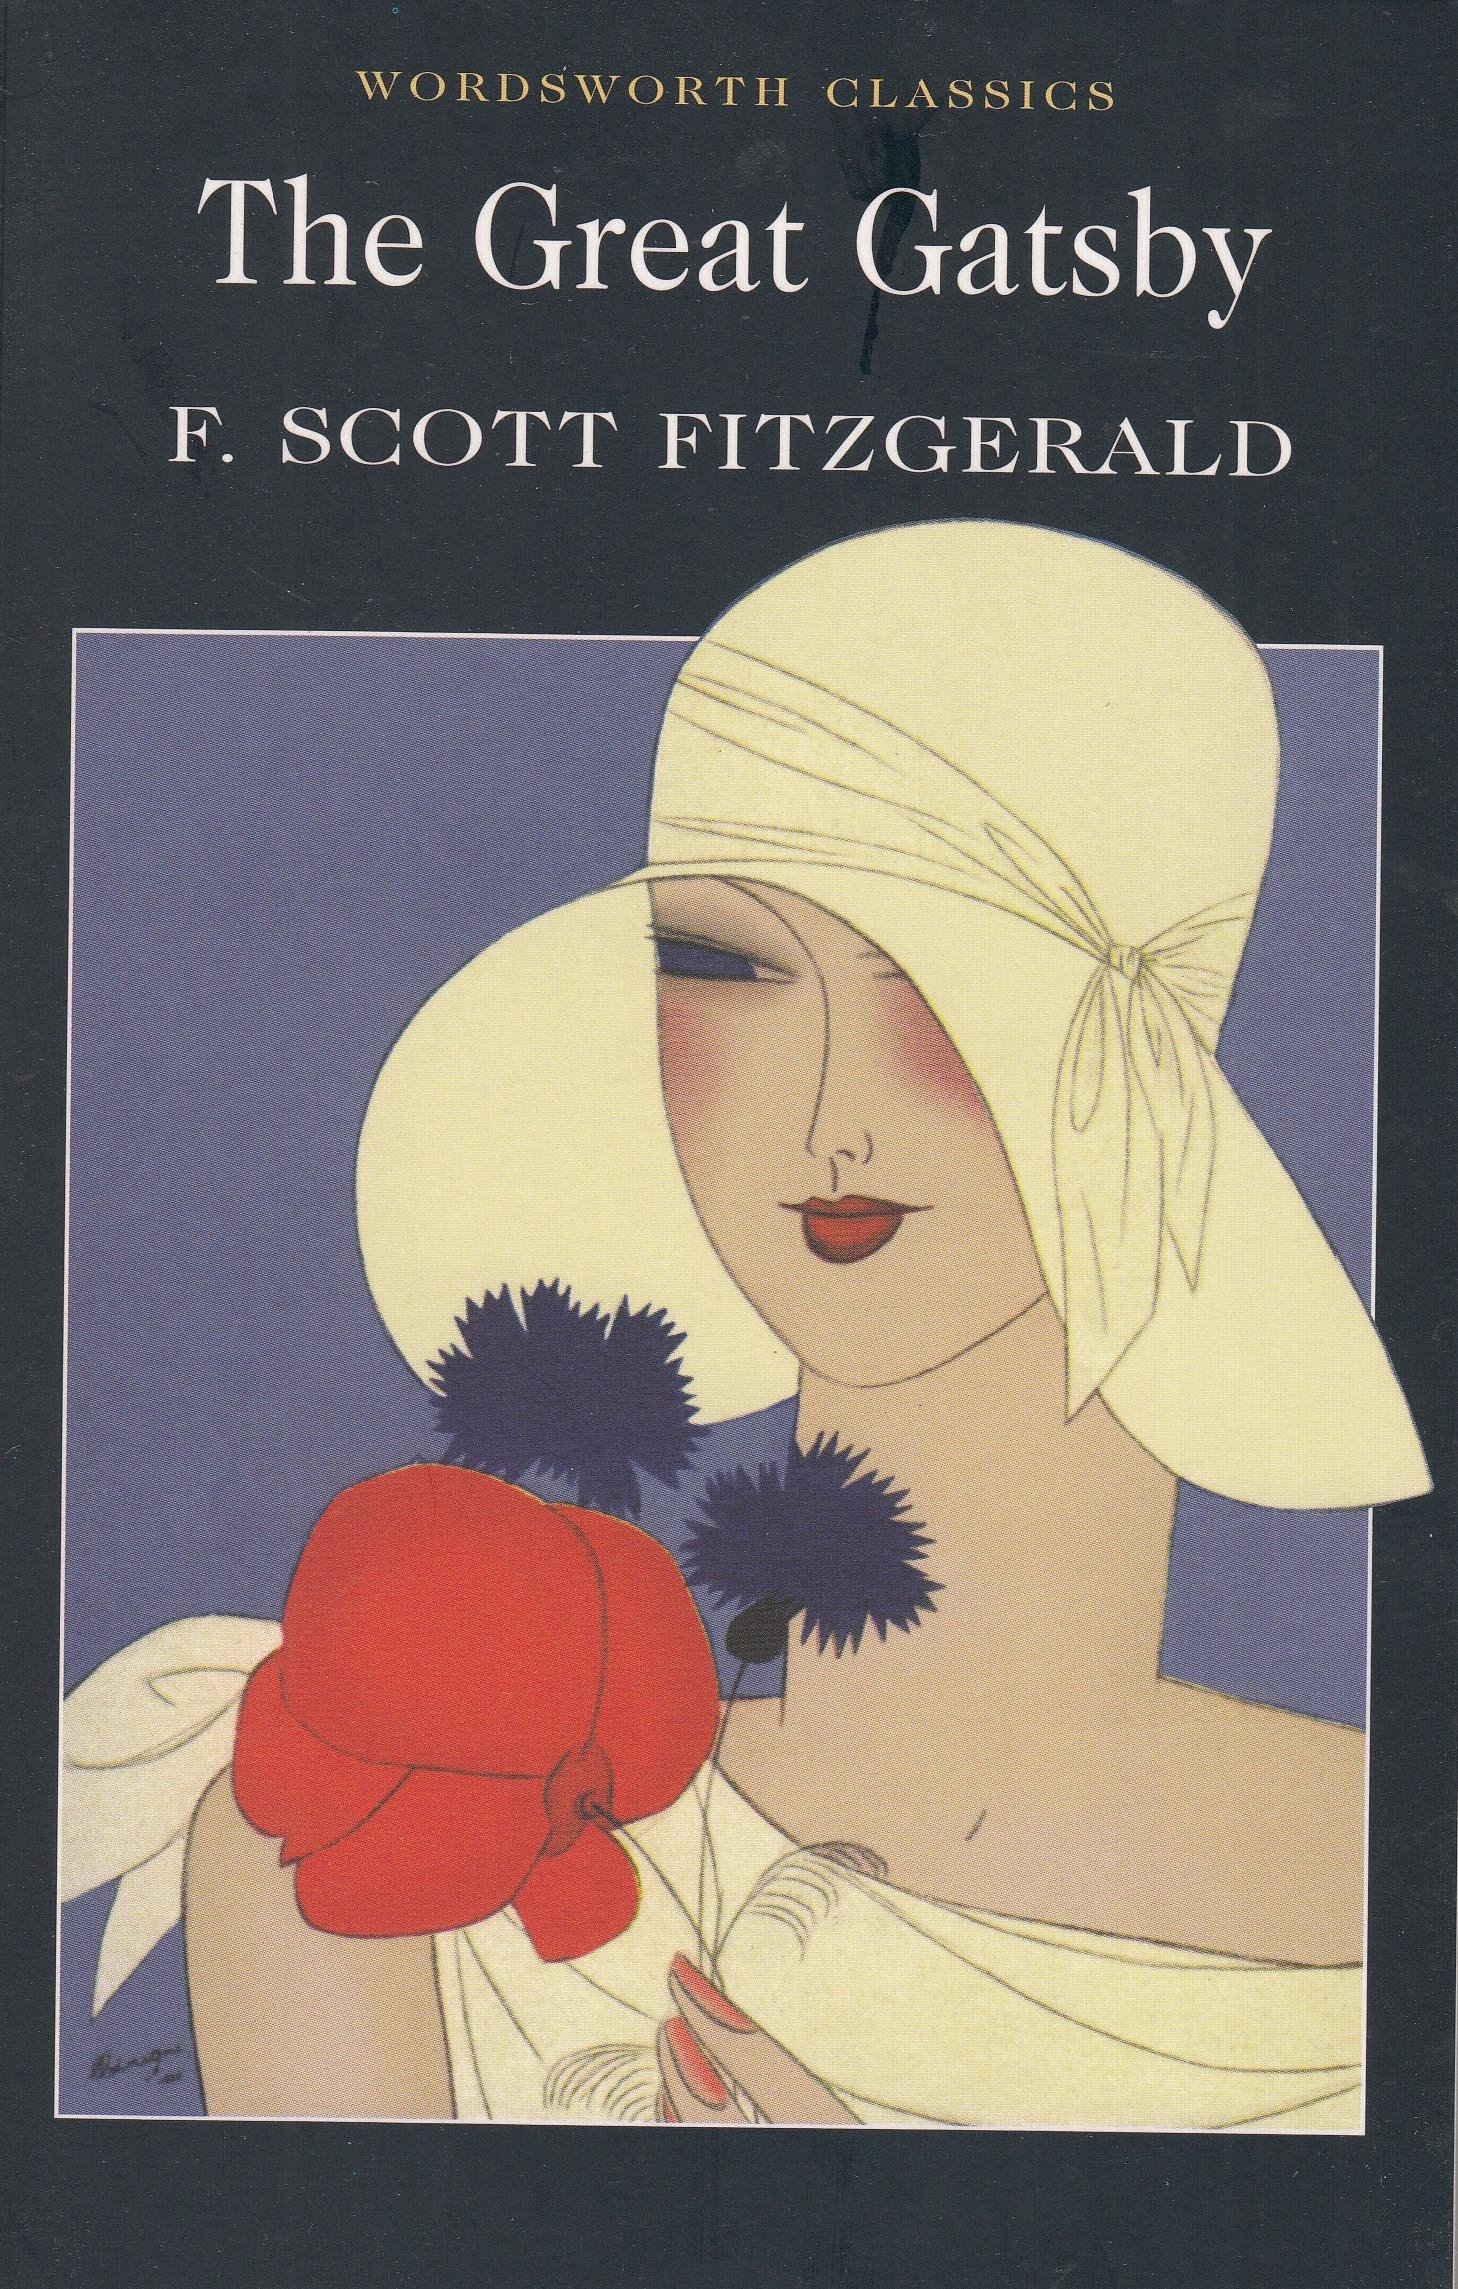 the great gatsby wordsworth classics amazon co uk f scott the great gatsby wordsworth classics amazon co uk f scott fitzgerald guy reynolds dr keith carabine 9781853260414 books